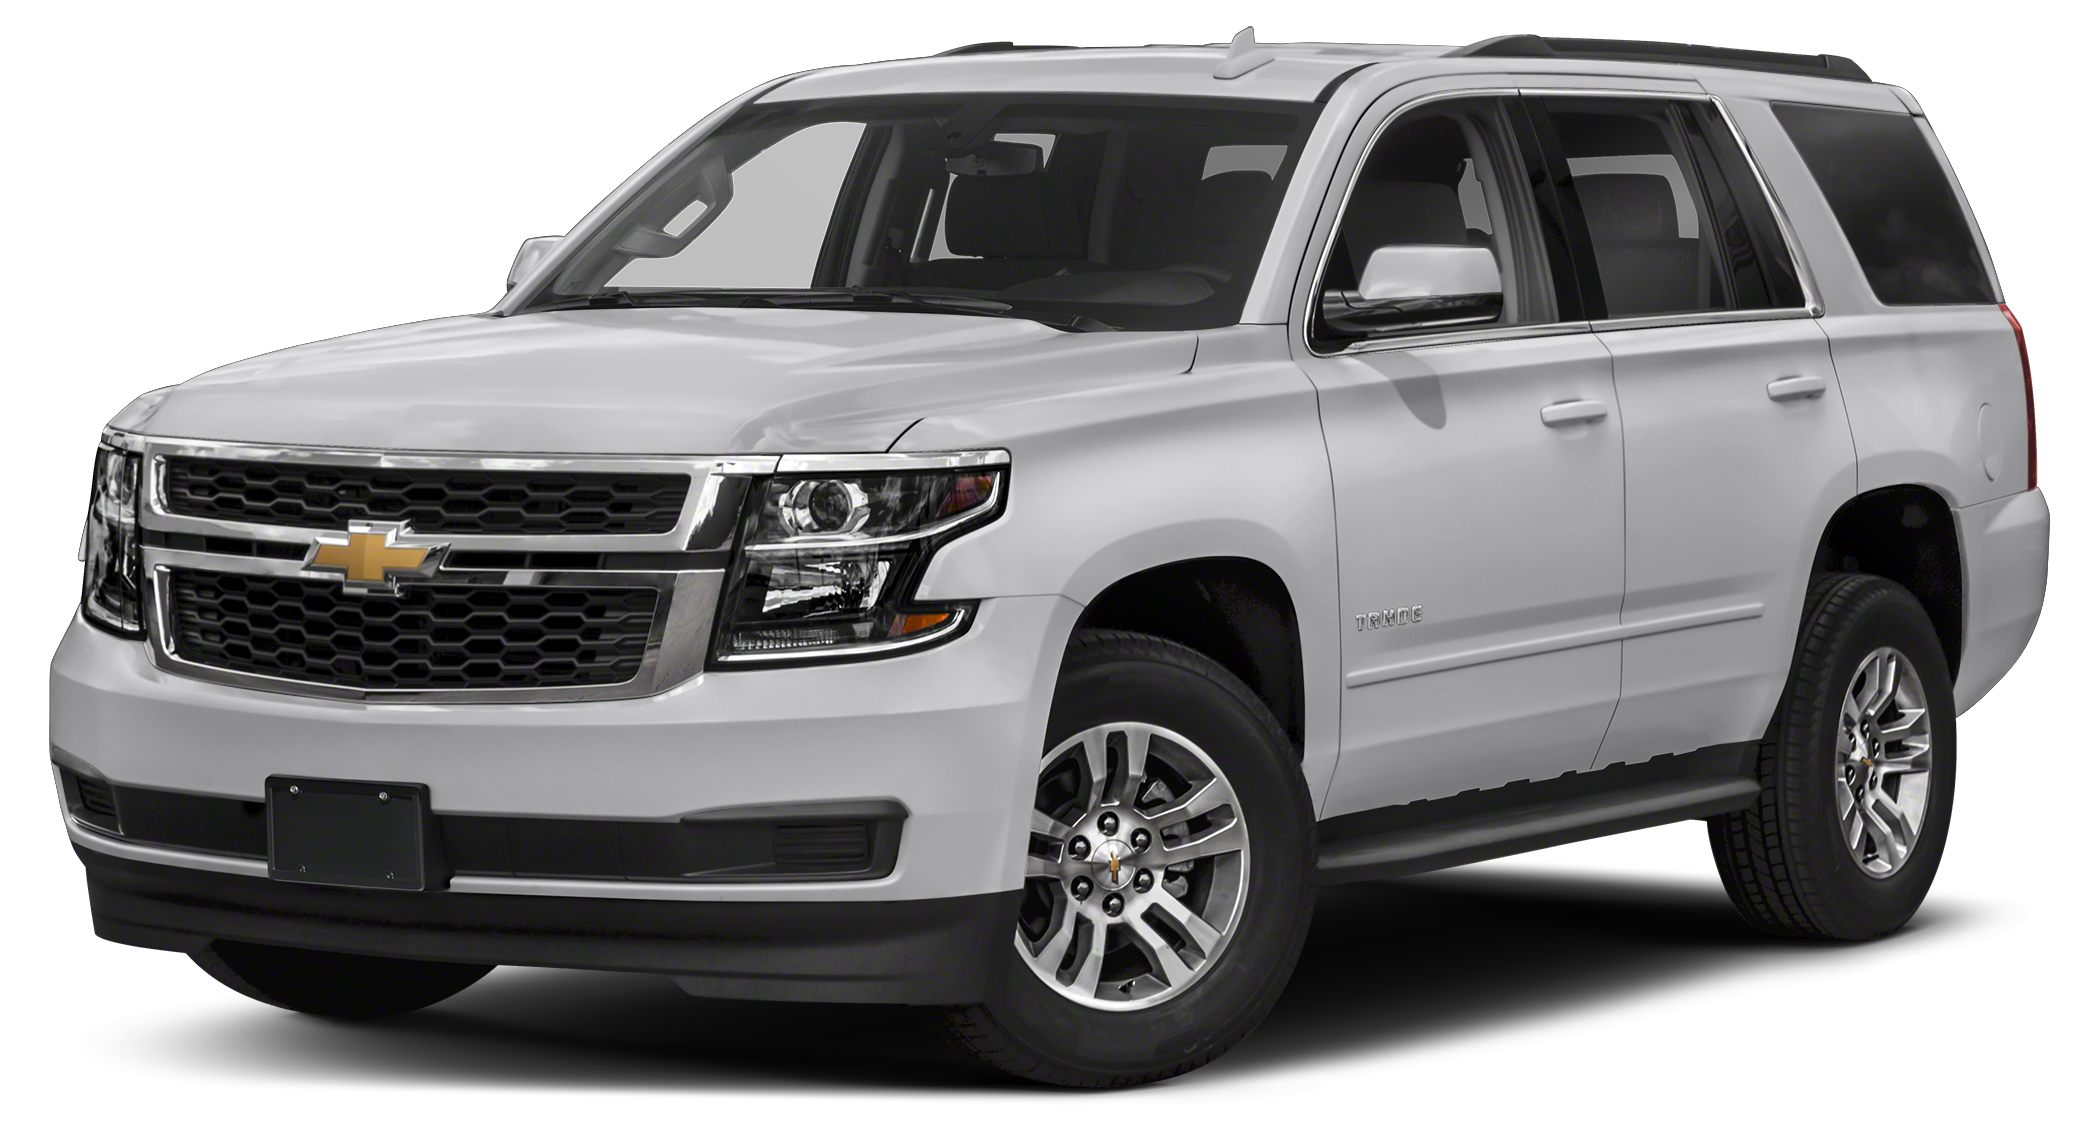 2018 Chevrolet Tahoe LS Silver Ice Metallic 2018 Chevrolet Tahoe LS RWD 6-Speed Automatic EcoTec3